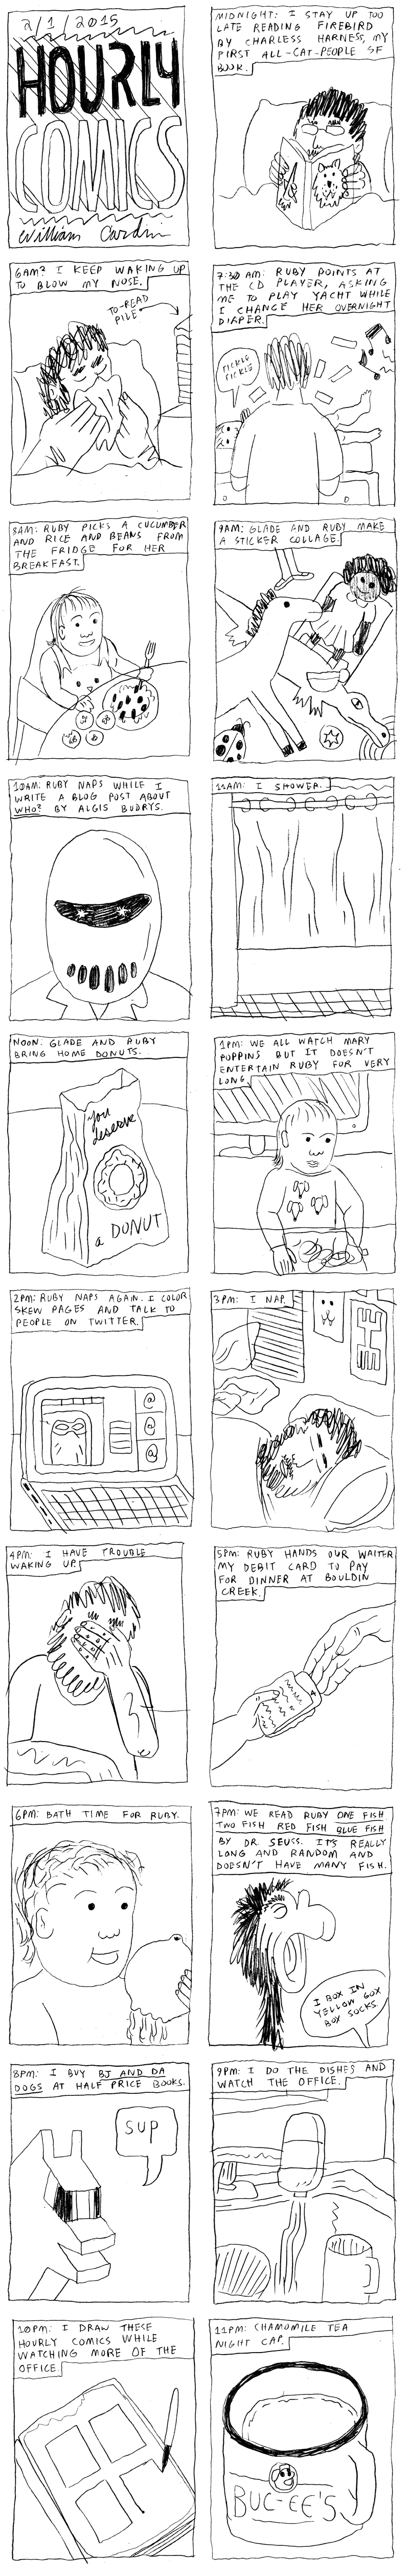 2015 Cardini Hourly Comic